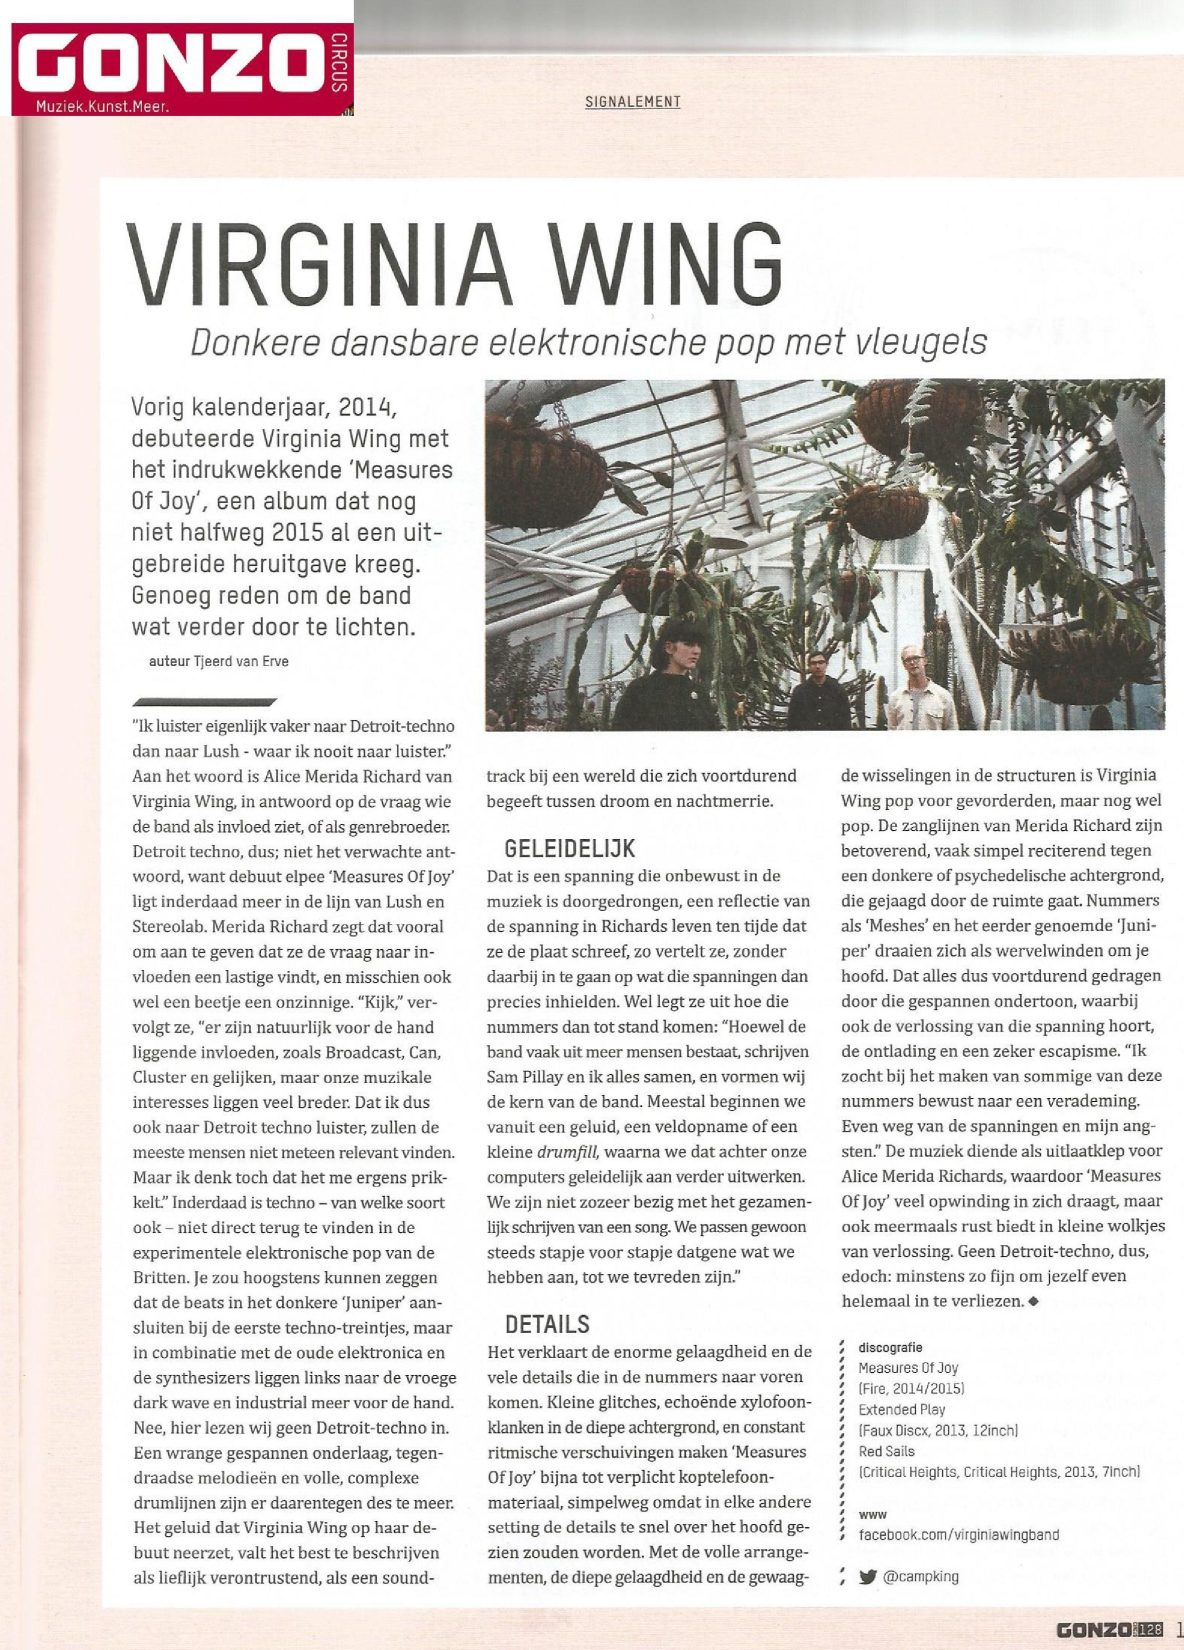 nl_virginiawing_gonzocircus129_1pagefeature-page-001-1